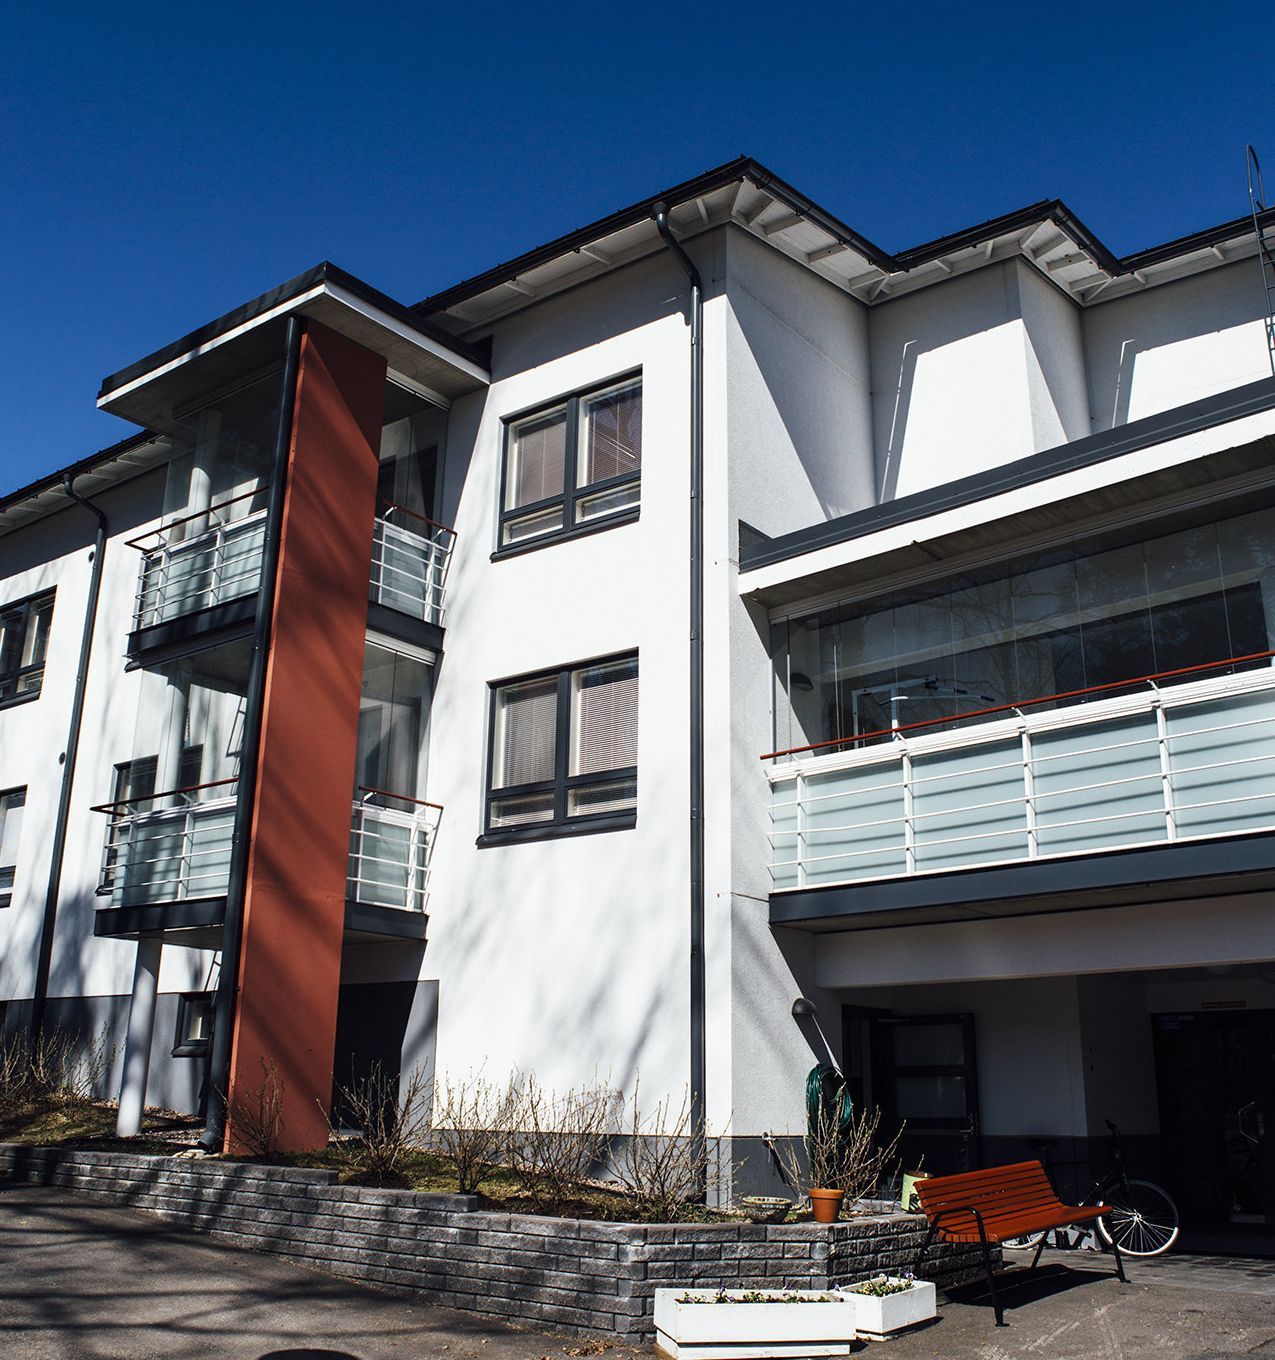 Väinölä, a supported housing unit in Espoo, Finland.